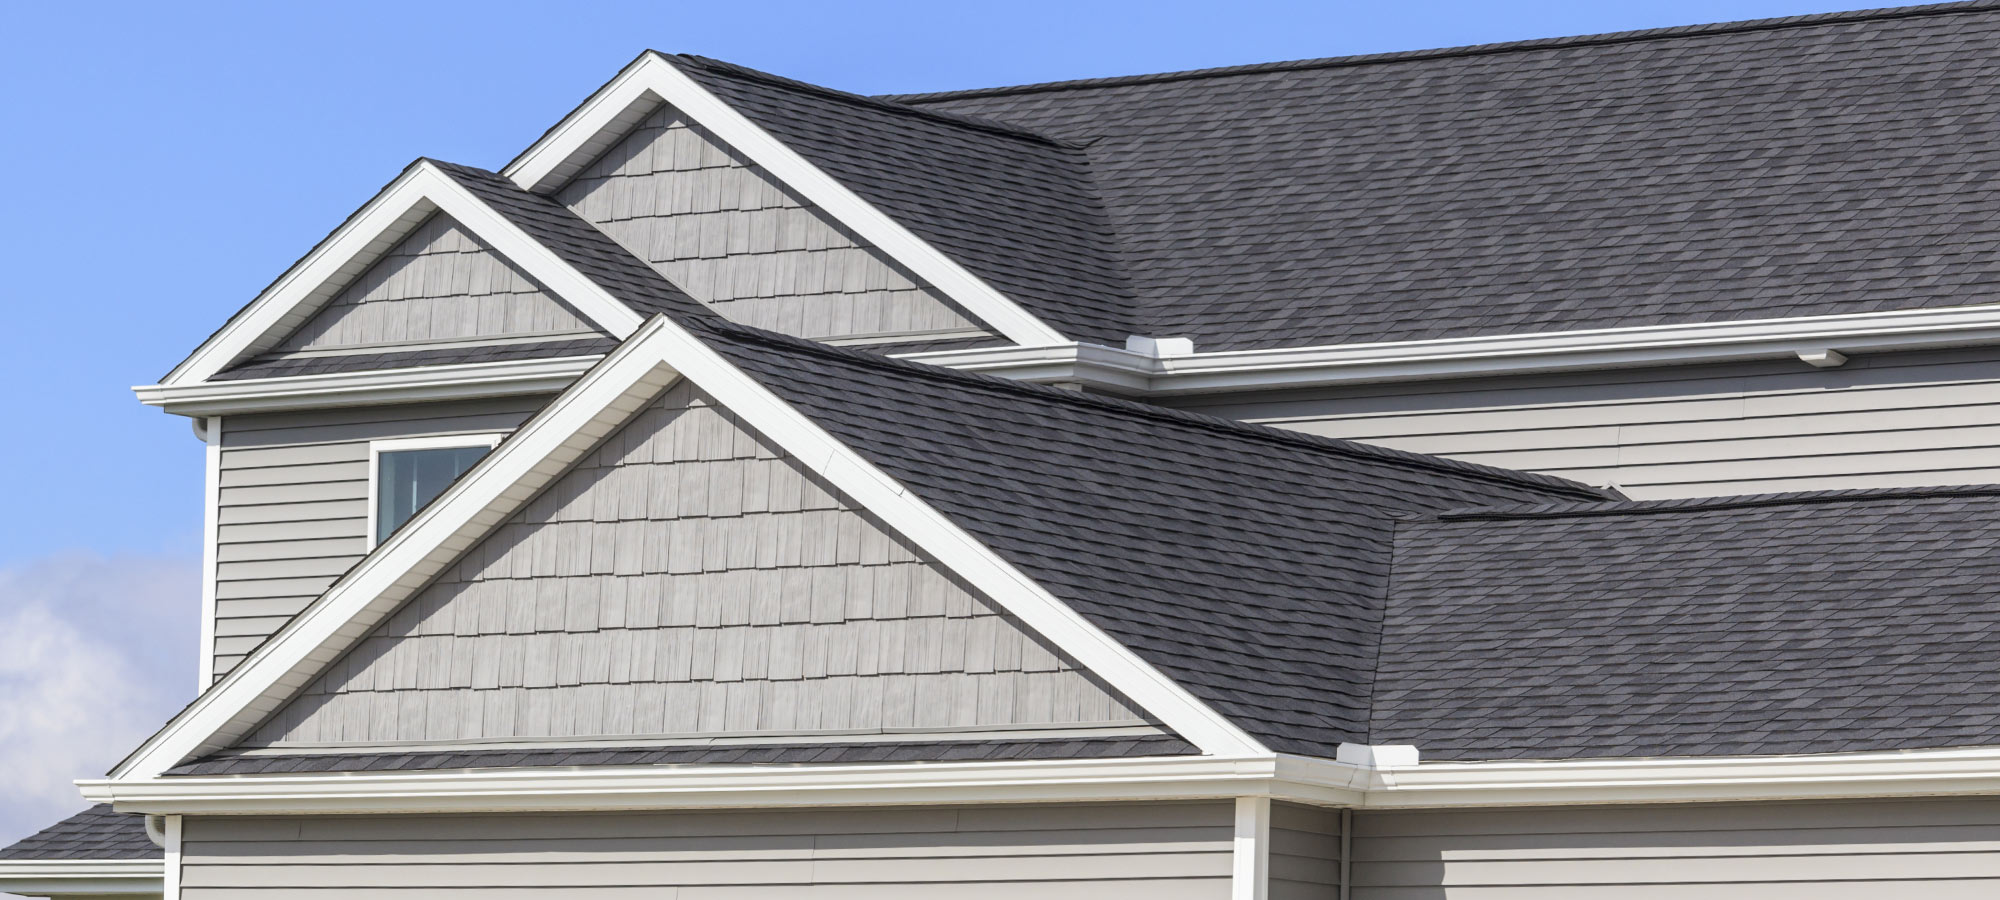 Atlantic Roofing And Siding Ocean Monmouth Atlantic Counties Nj